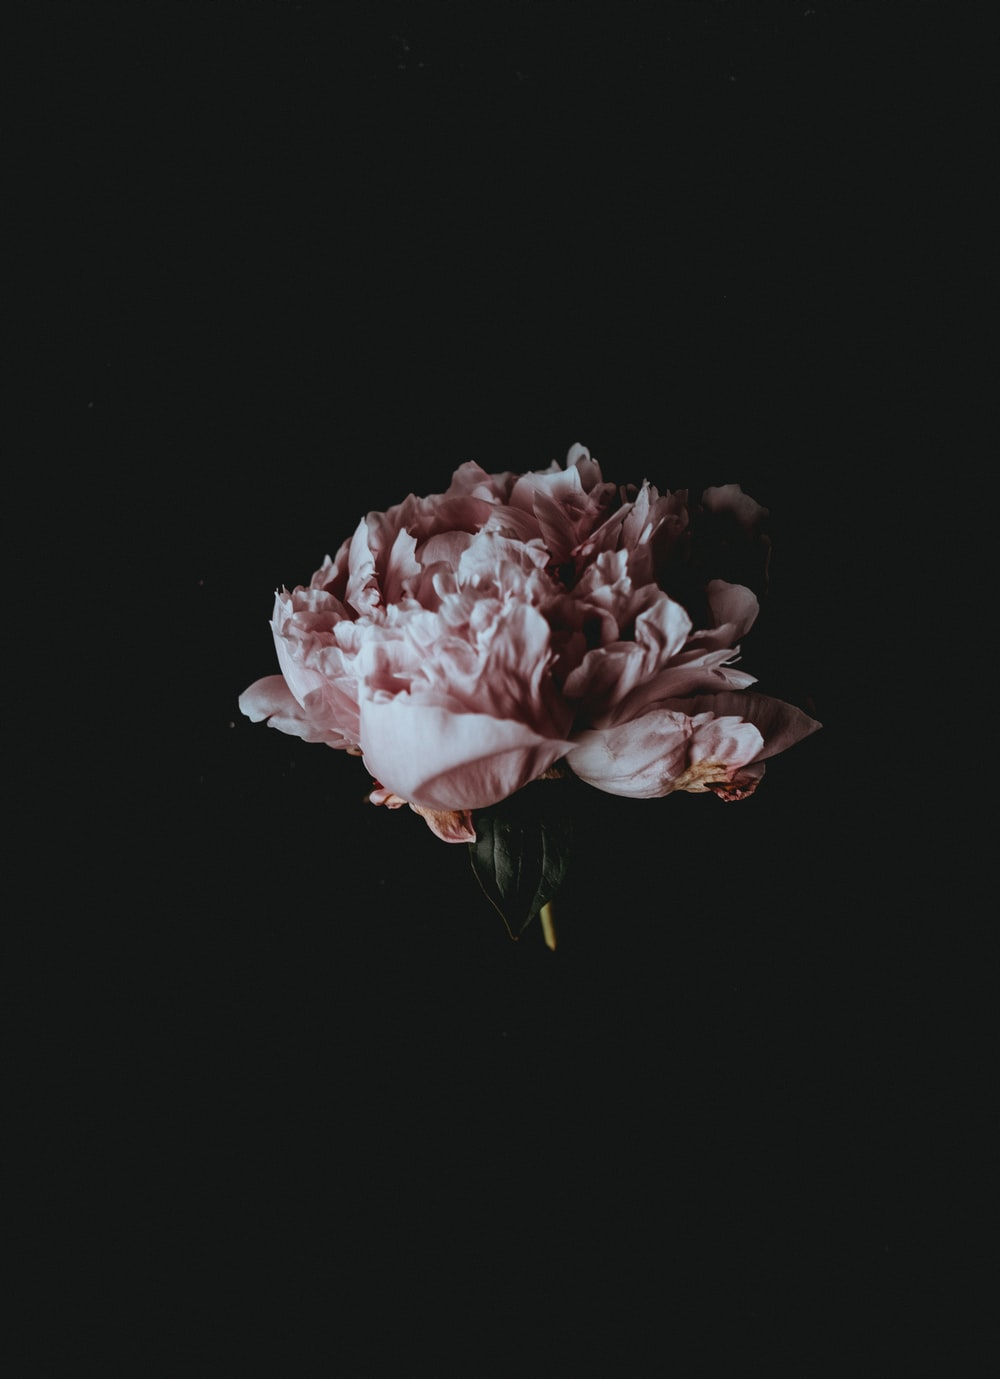 A Pale Pink Peony Flower Against Black Background